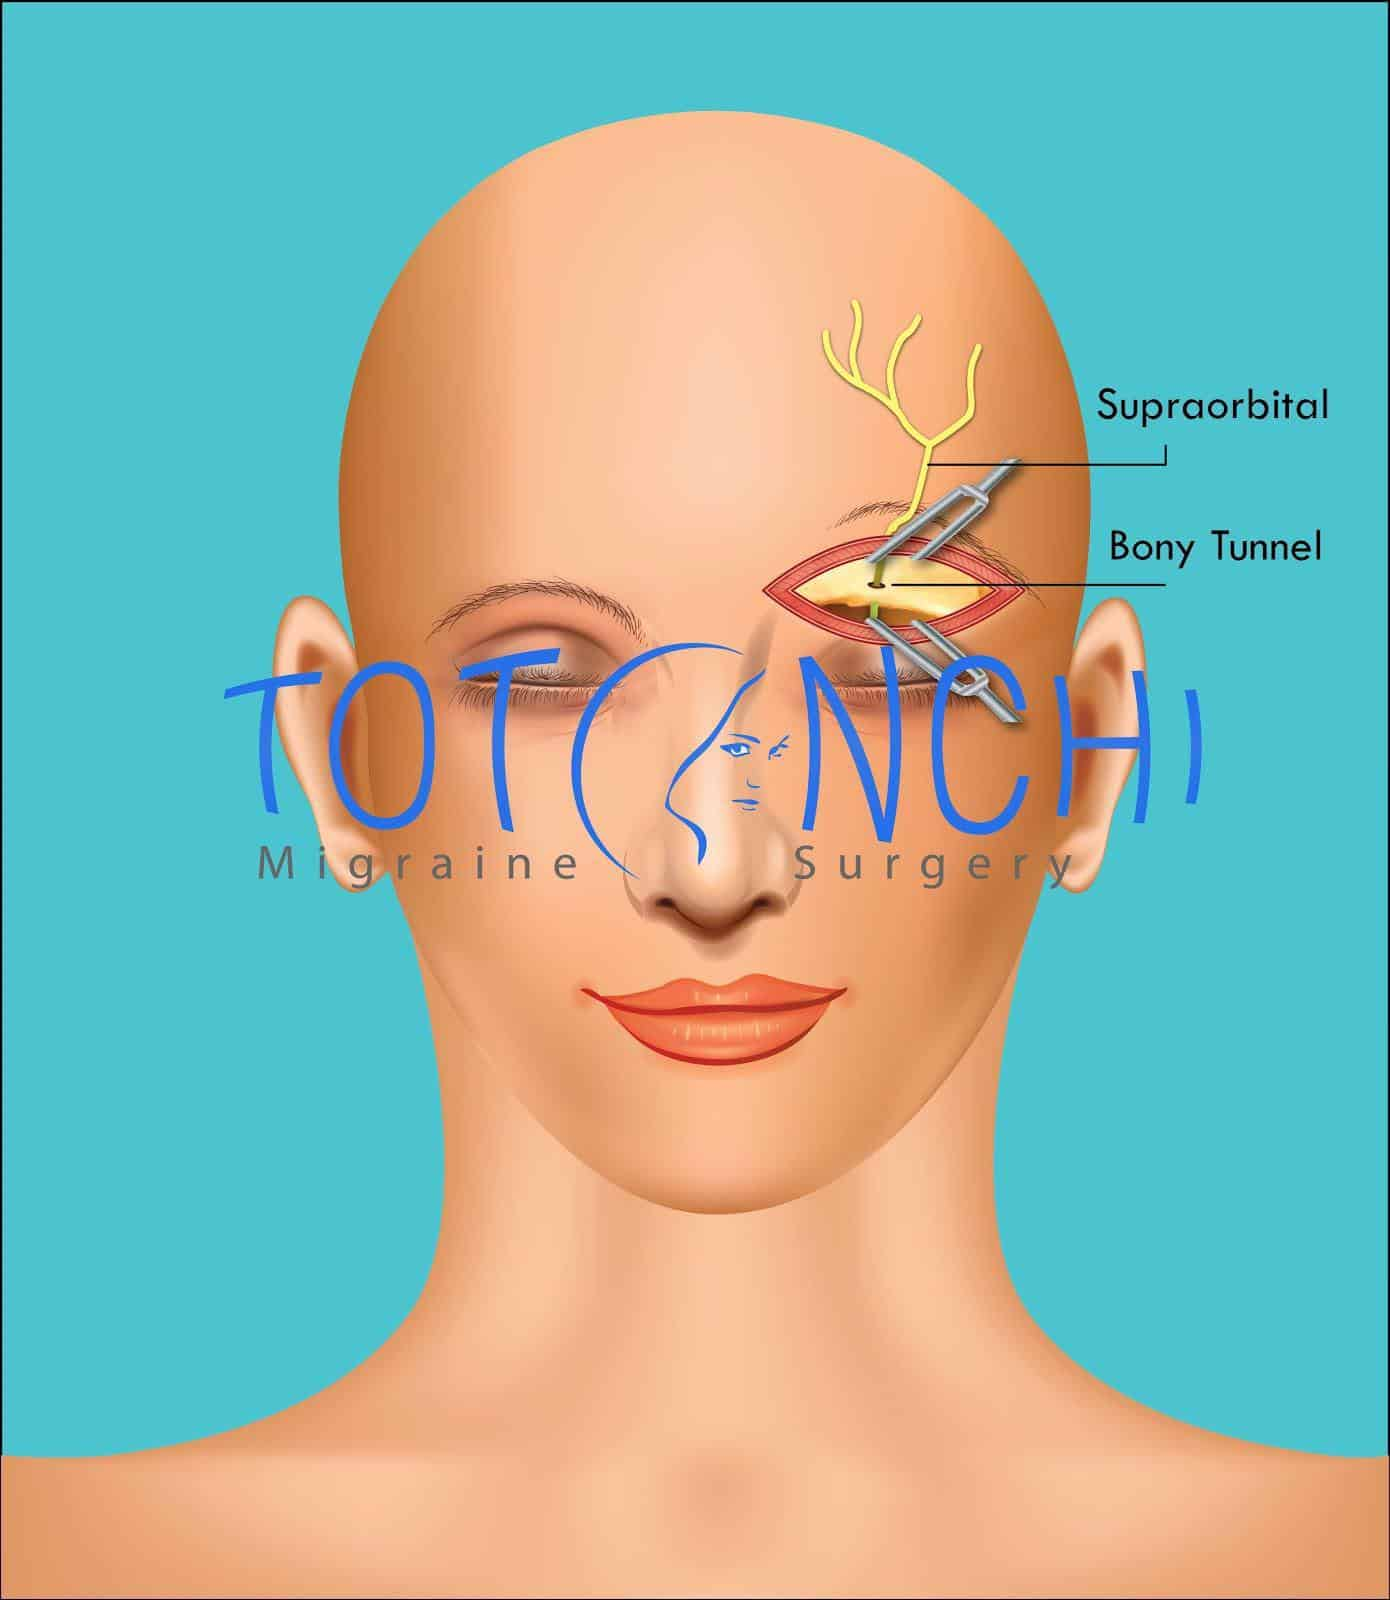 Migraine Surgery in Cleveland